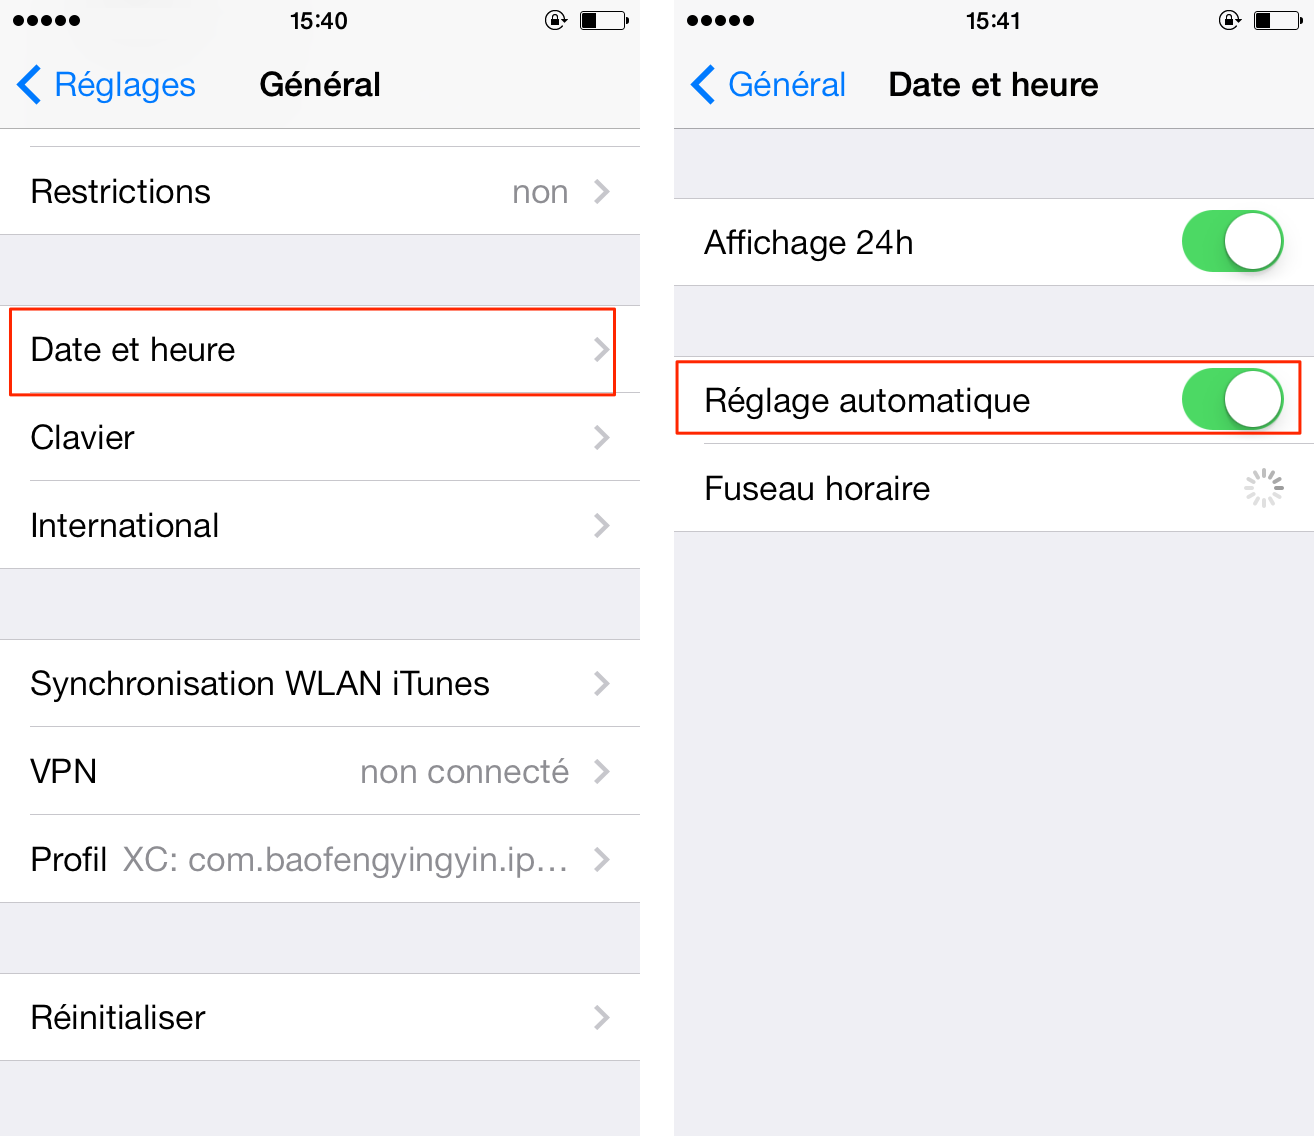 iOS 9/9.1/9.2/9.3 affiche incorrectement le temps sur iPhone/iPad